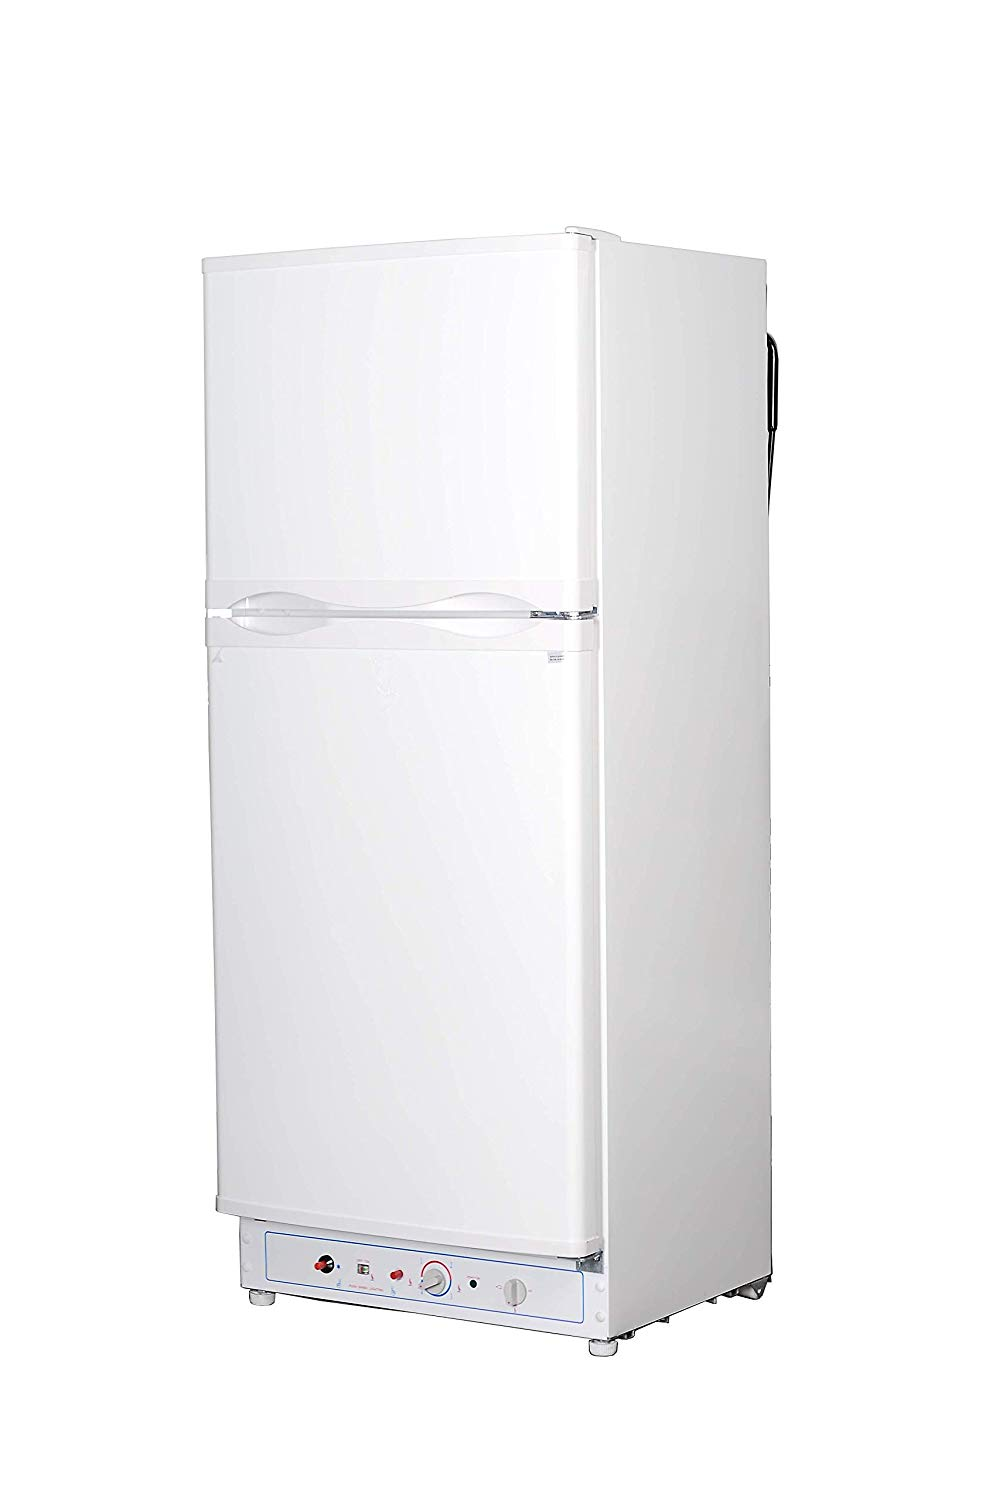 SMETA Electric Propane Absorption Refrigerator Double Door Fridge Freezer,110V/Gas 2-Way,6.1 cu ft